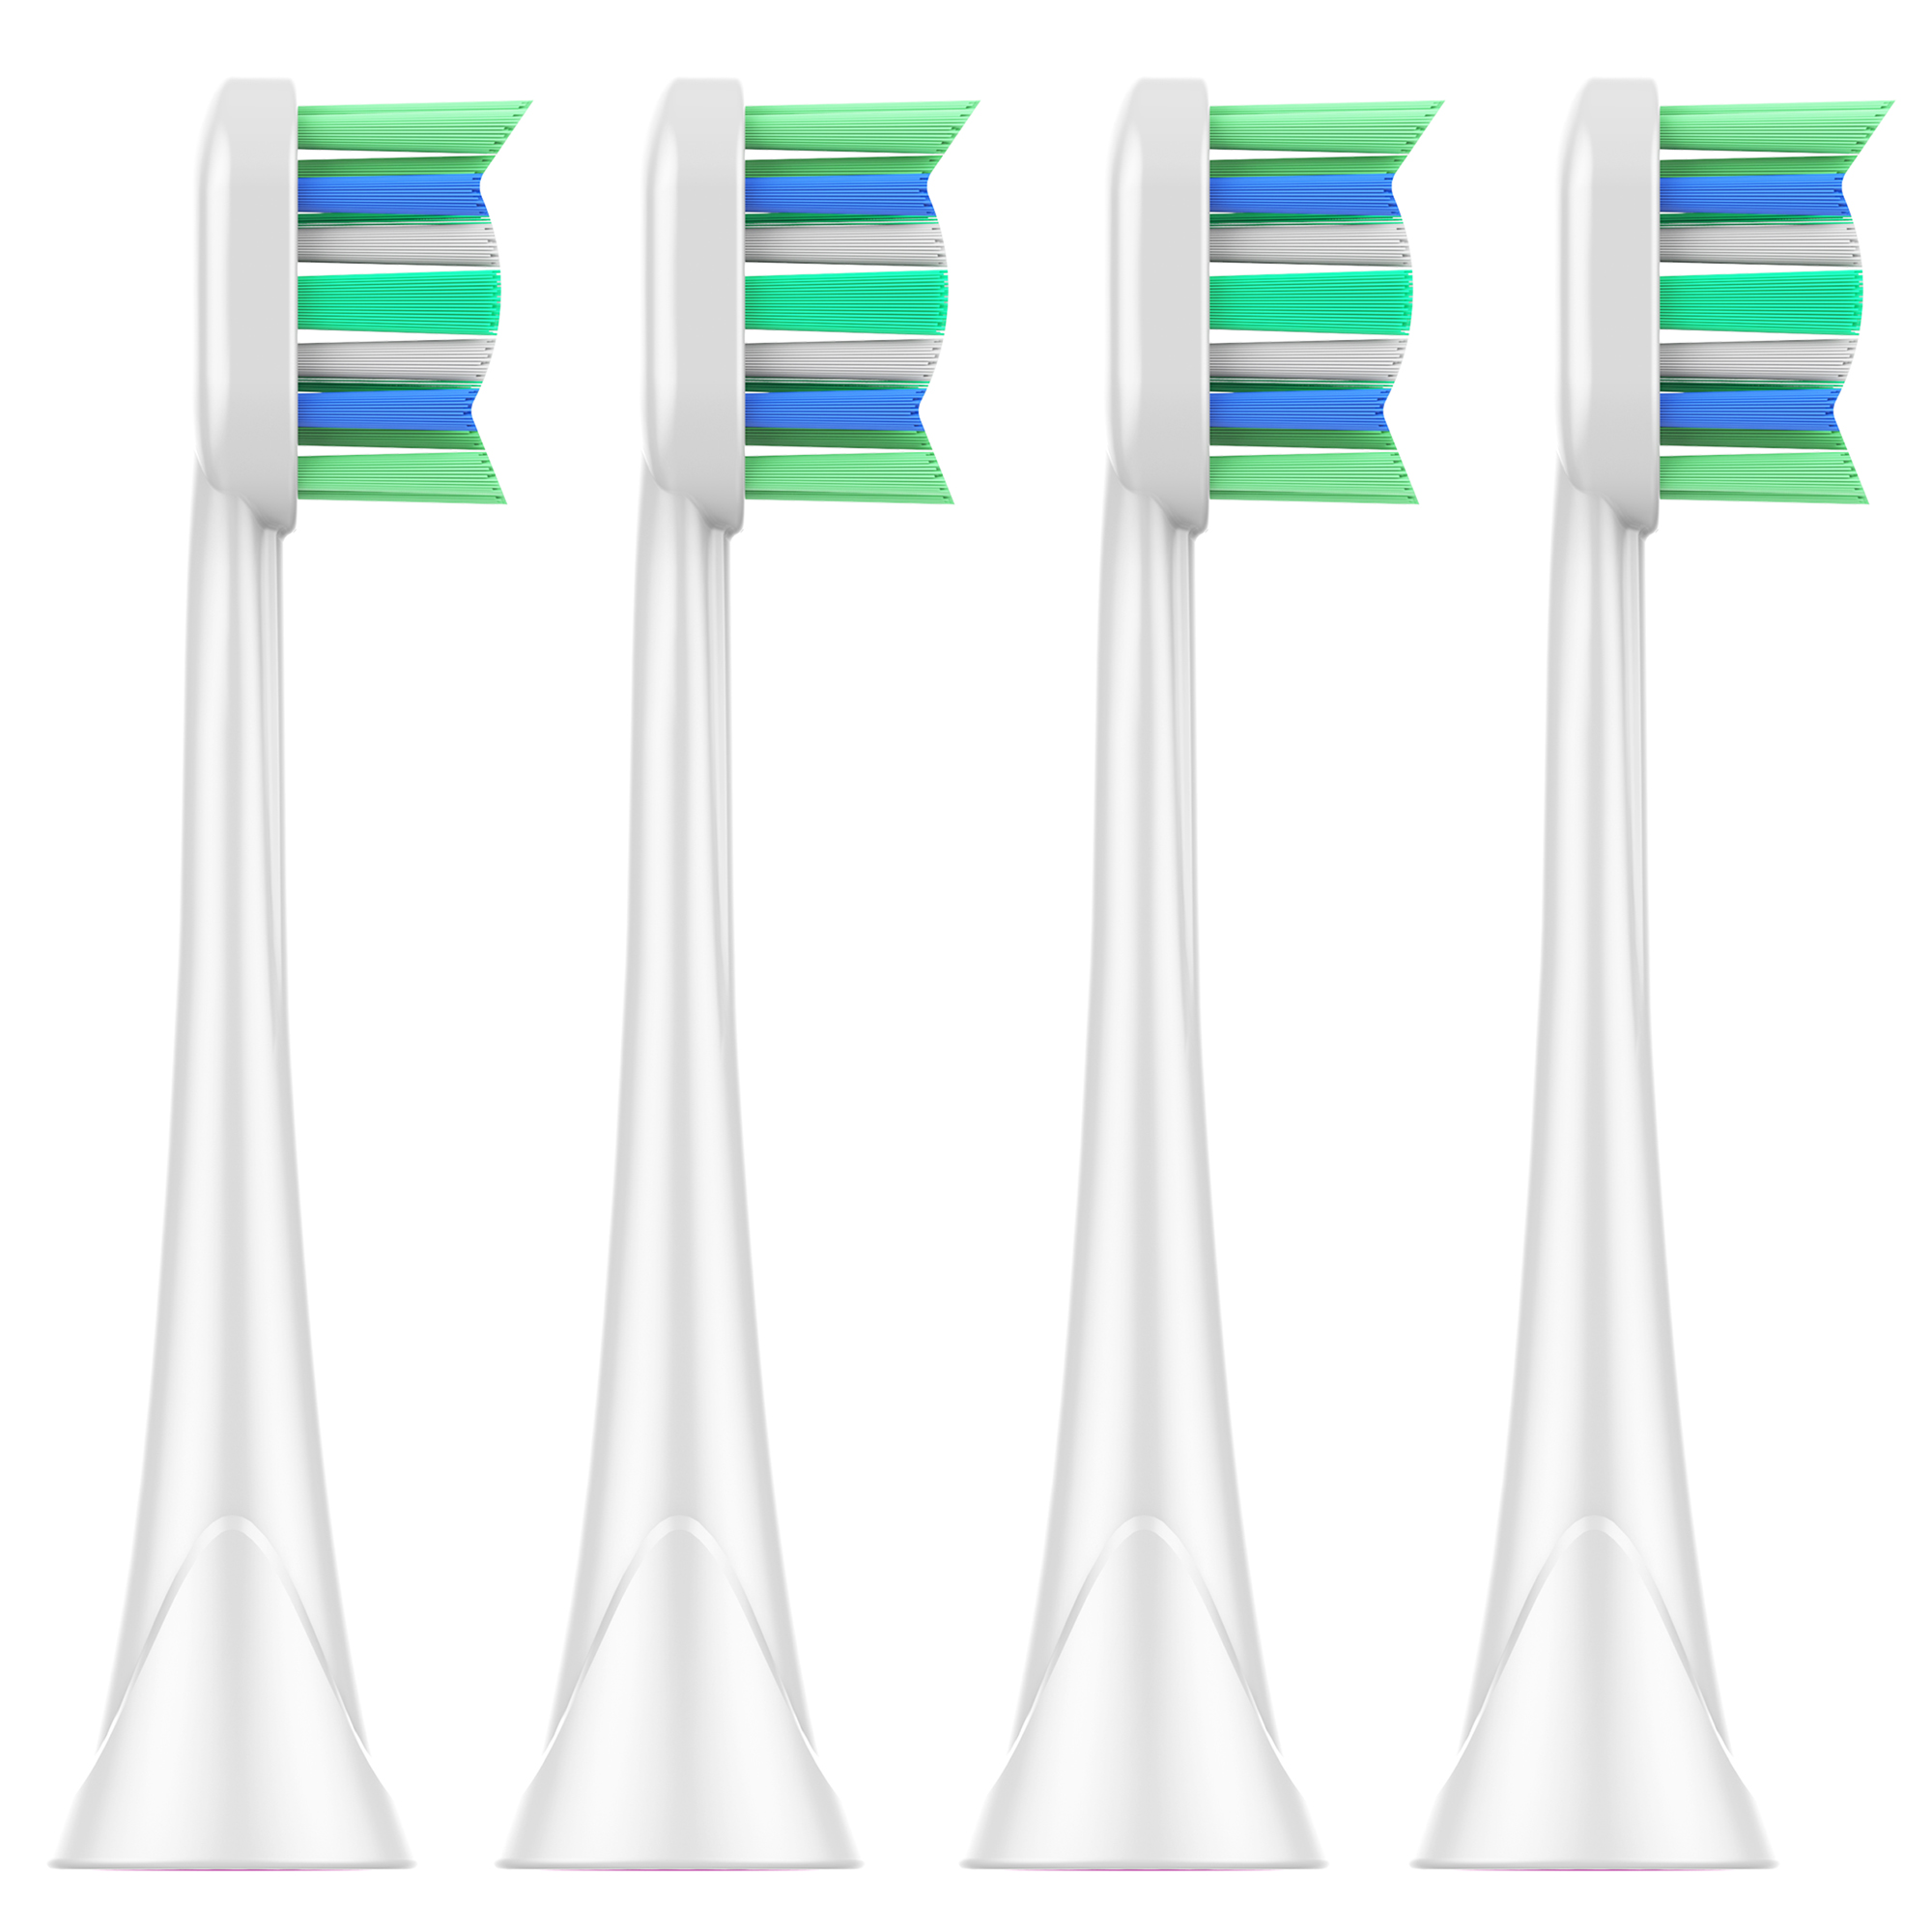 4 PCS Reaplacement Toothbrush Heads For Philips Sonicare Toothbrush Heads HX9312 HX9322 HX9331